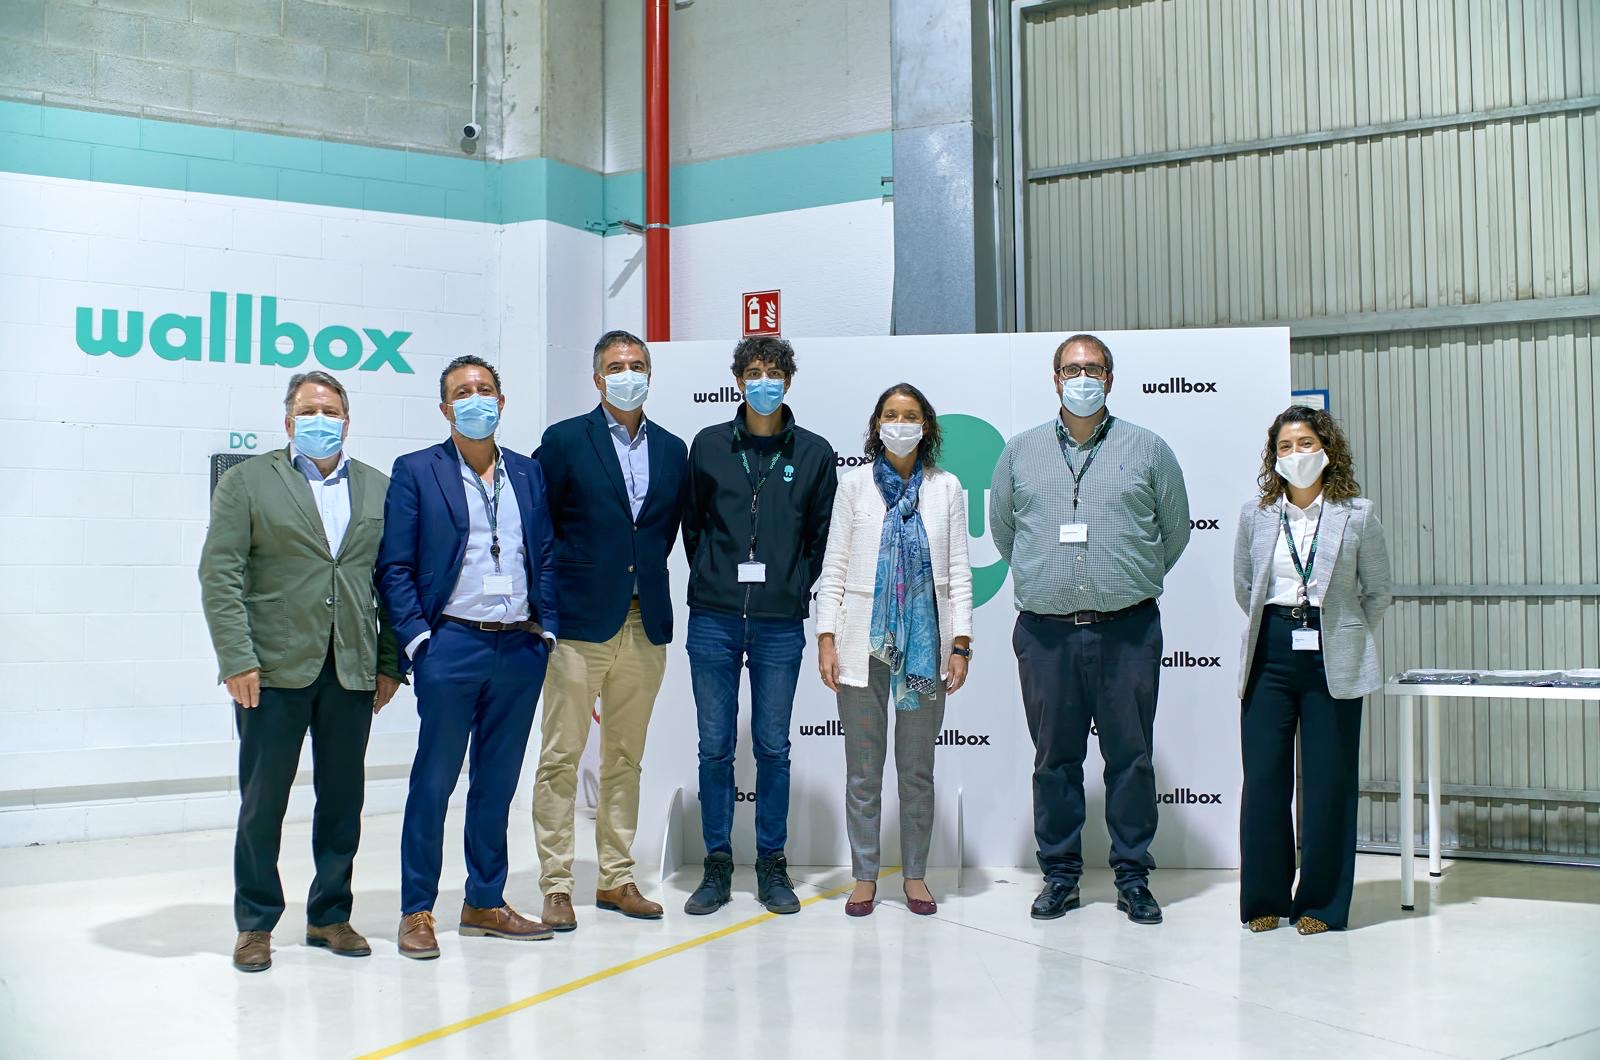 Spain's Minister of Industry, Trade and Tourism visits Wallbox